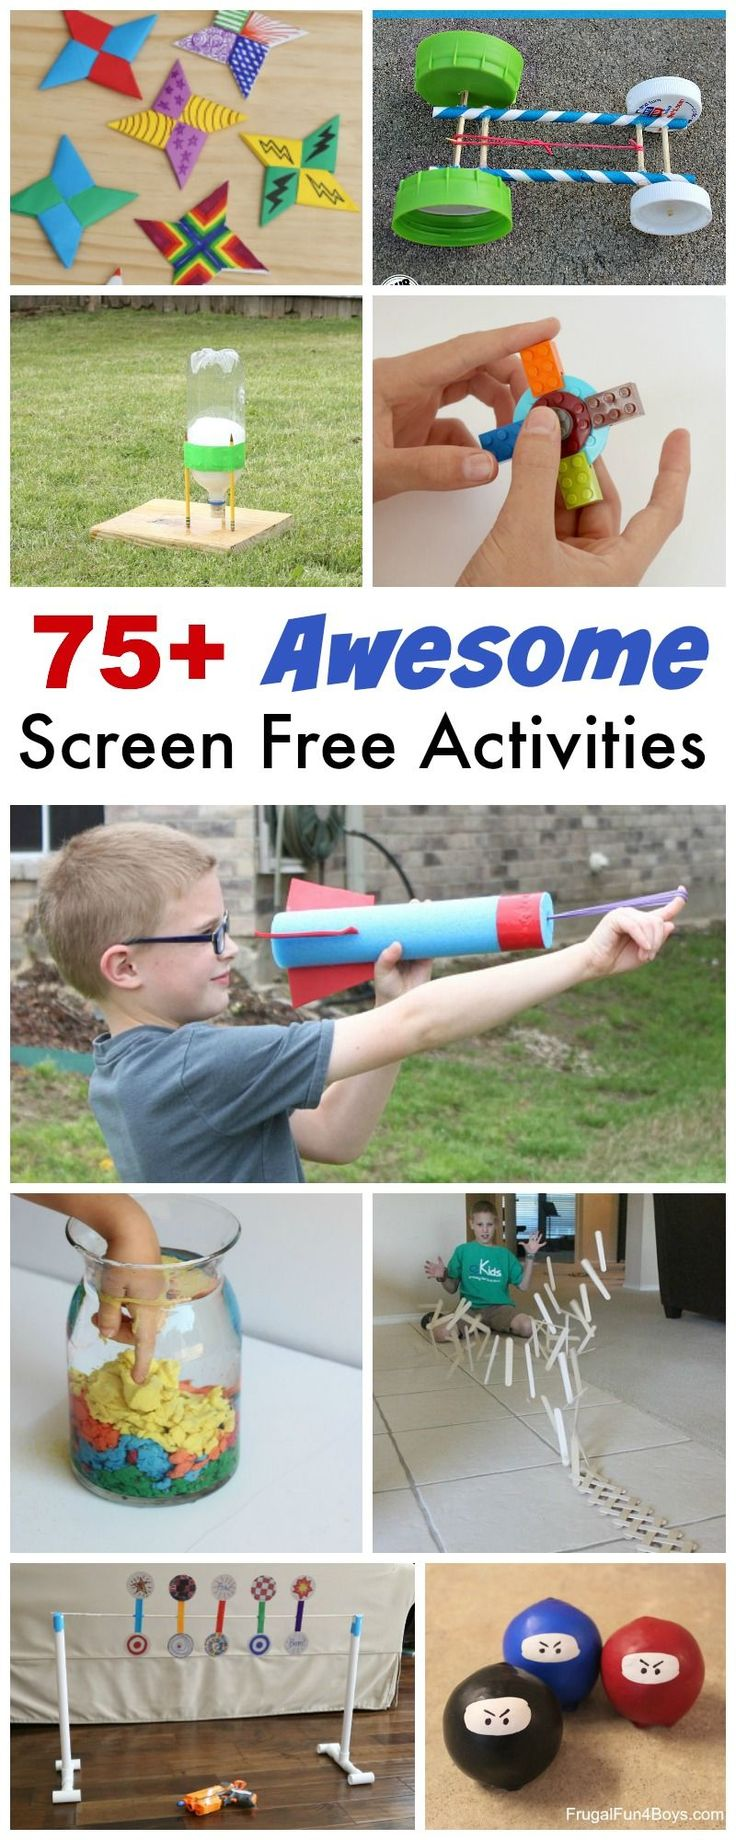 75+ Screen-Free Projects, Activities and Crafts for Kids (Perfect for ages 8-12!)